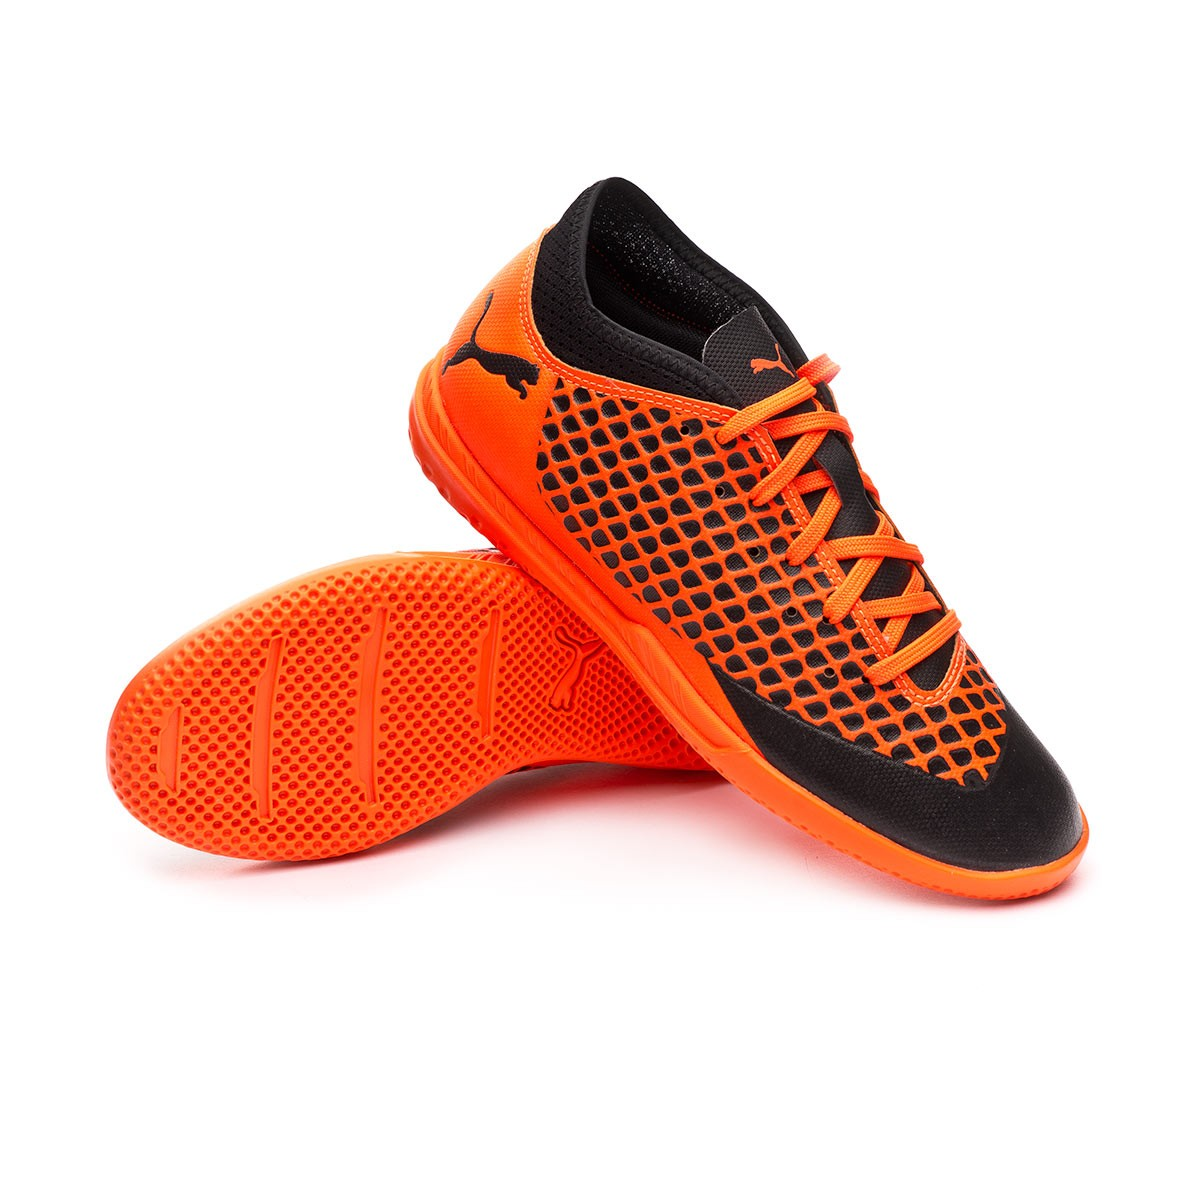 8593829c8 Zapatilla Puma Future 2.4 IT Niño Puma black-Shocking orange - Tienda de fútbol  Fútbol Emotion